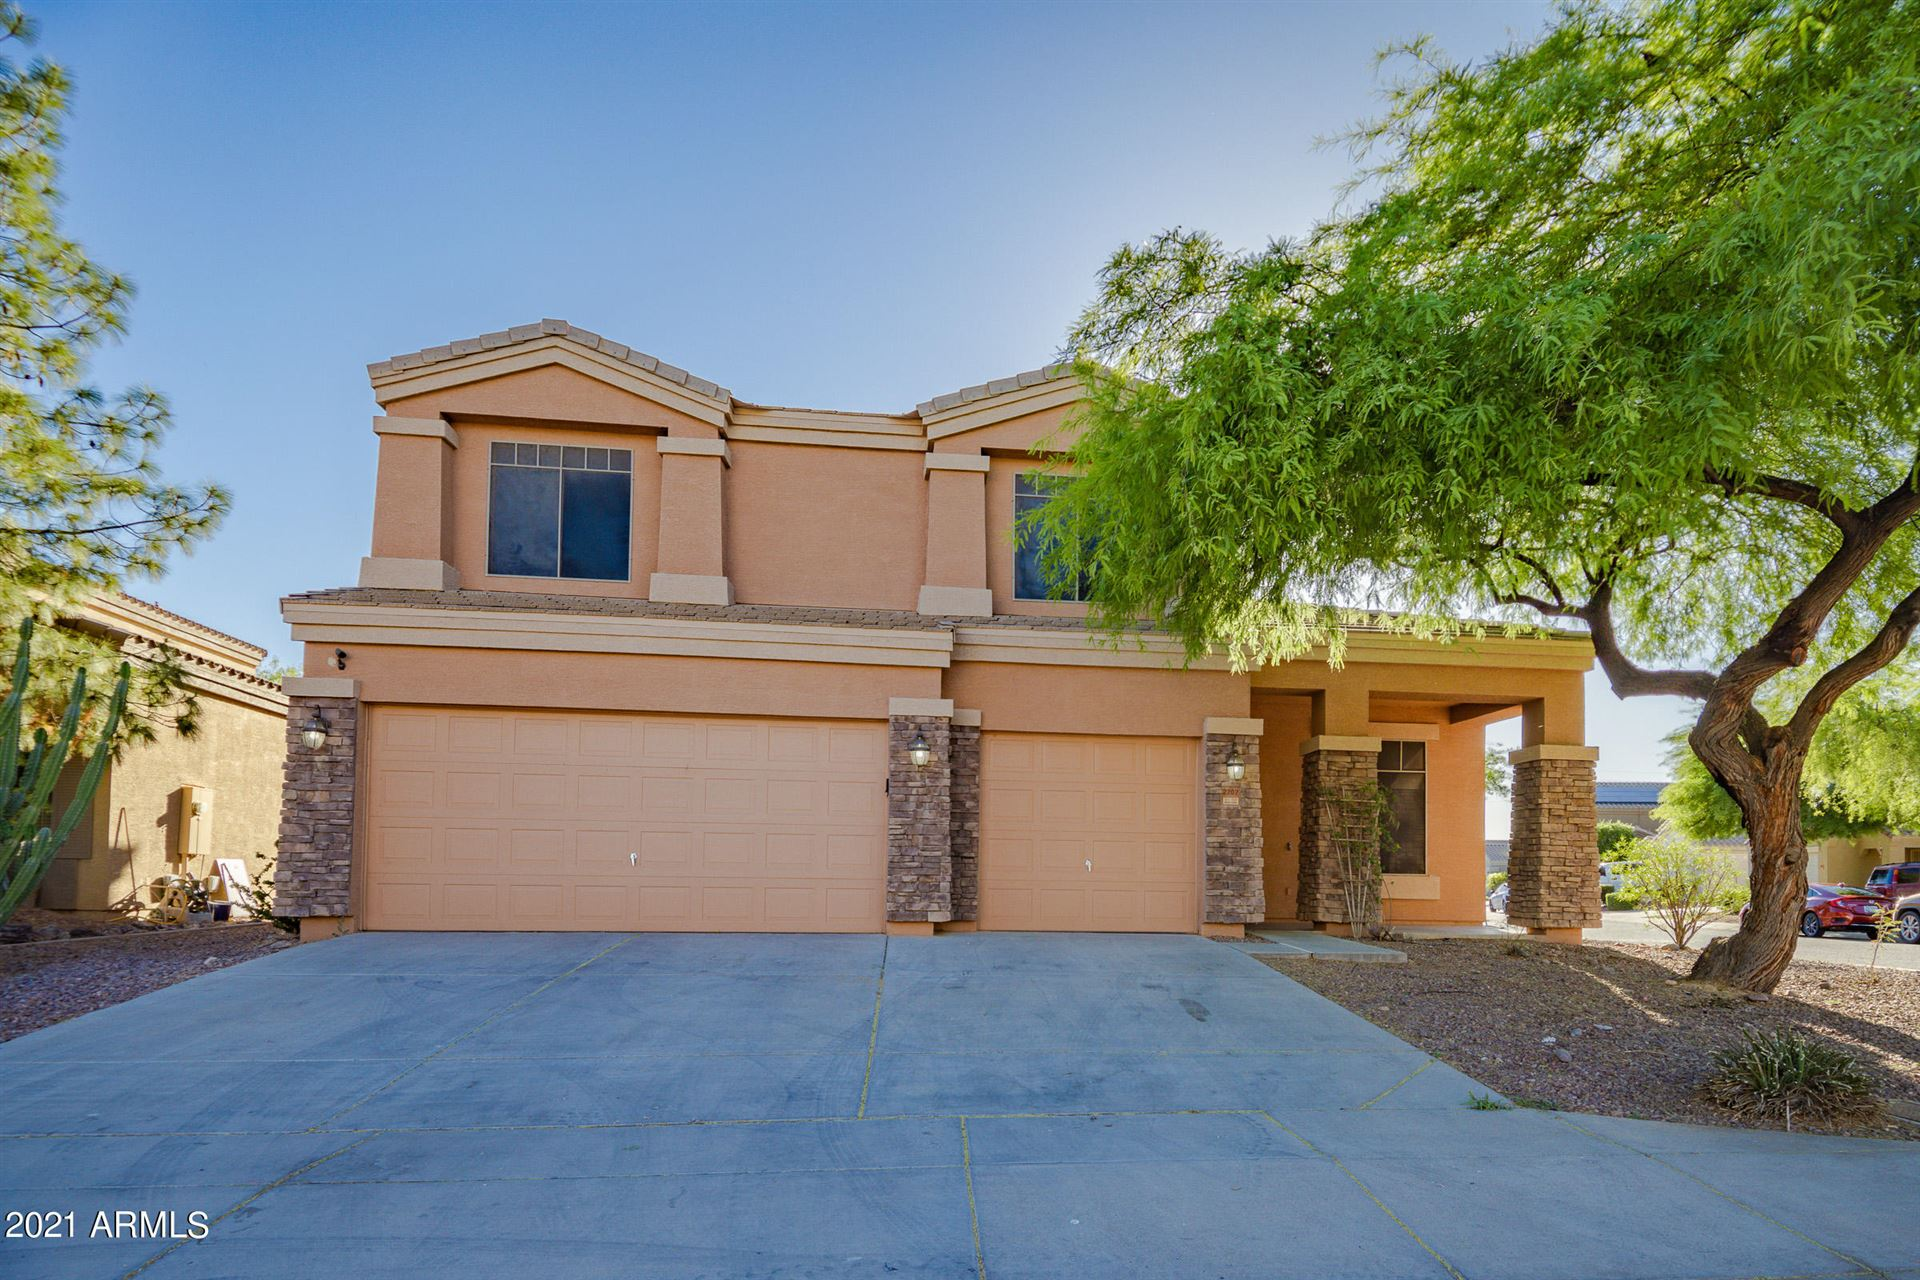 Photo of 2202 S 106TH Avenue, Tolleson, AZ 85353 (MLS # 6220709)